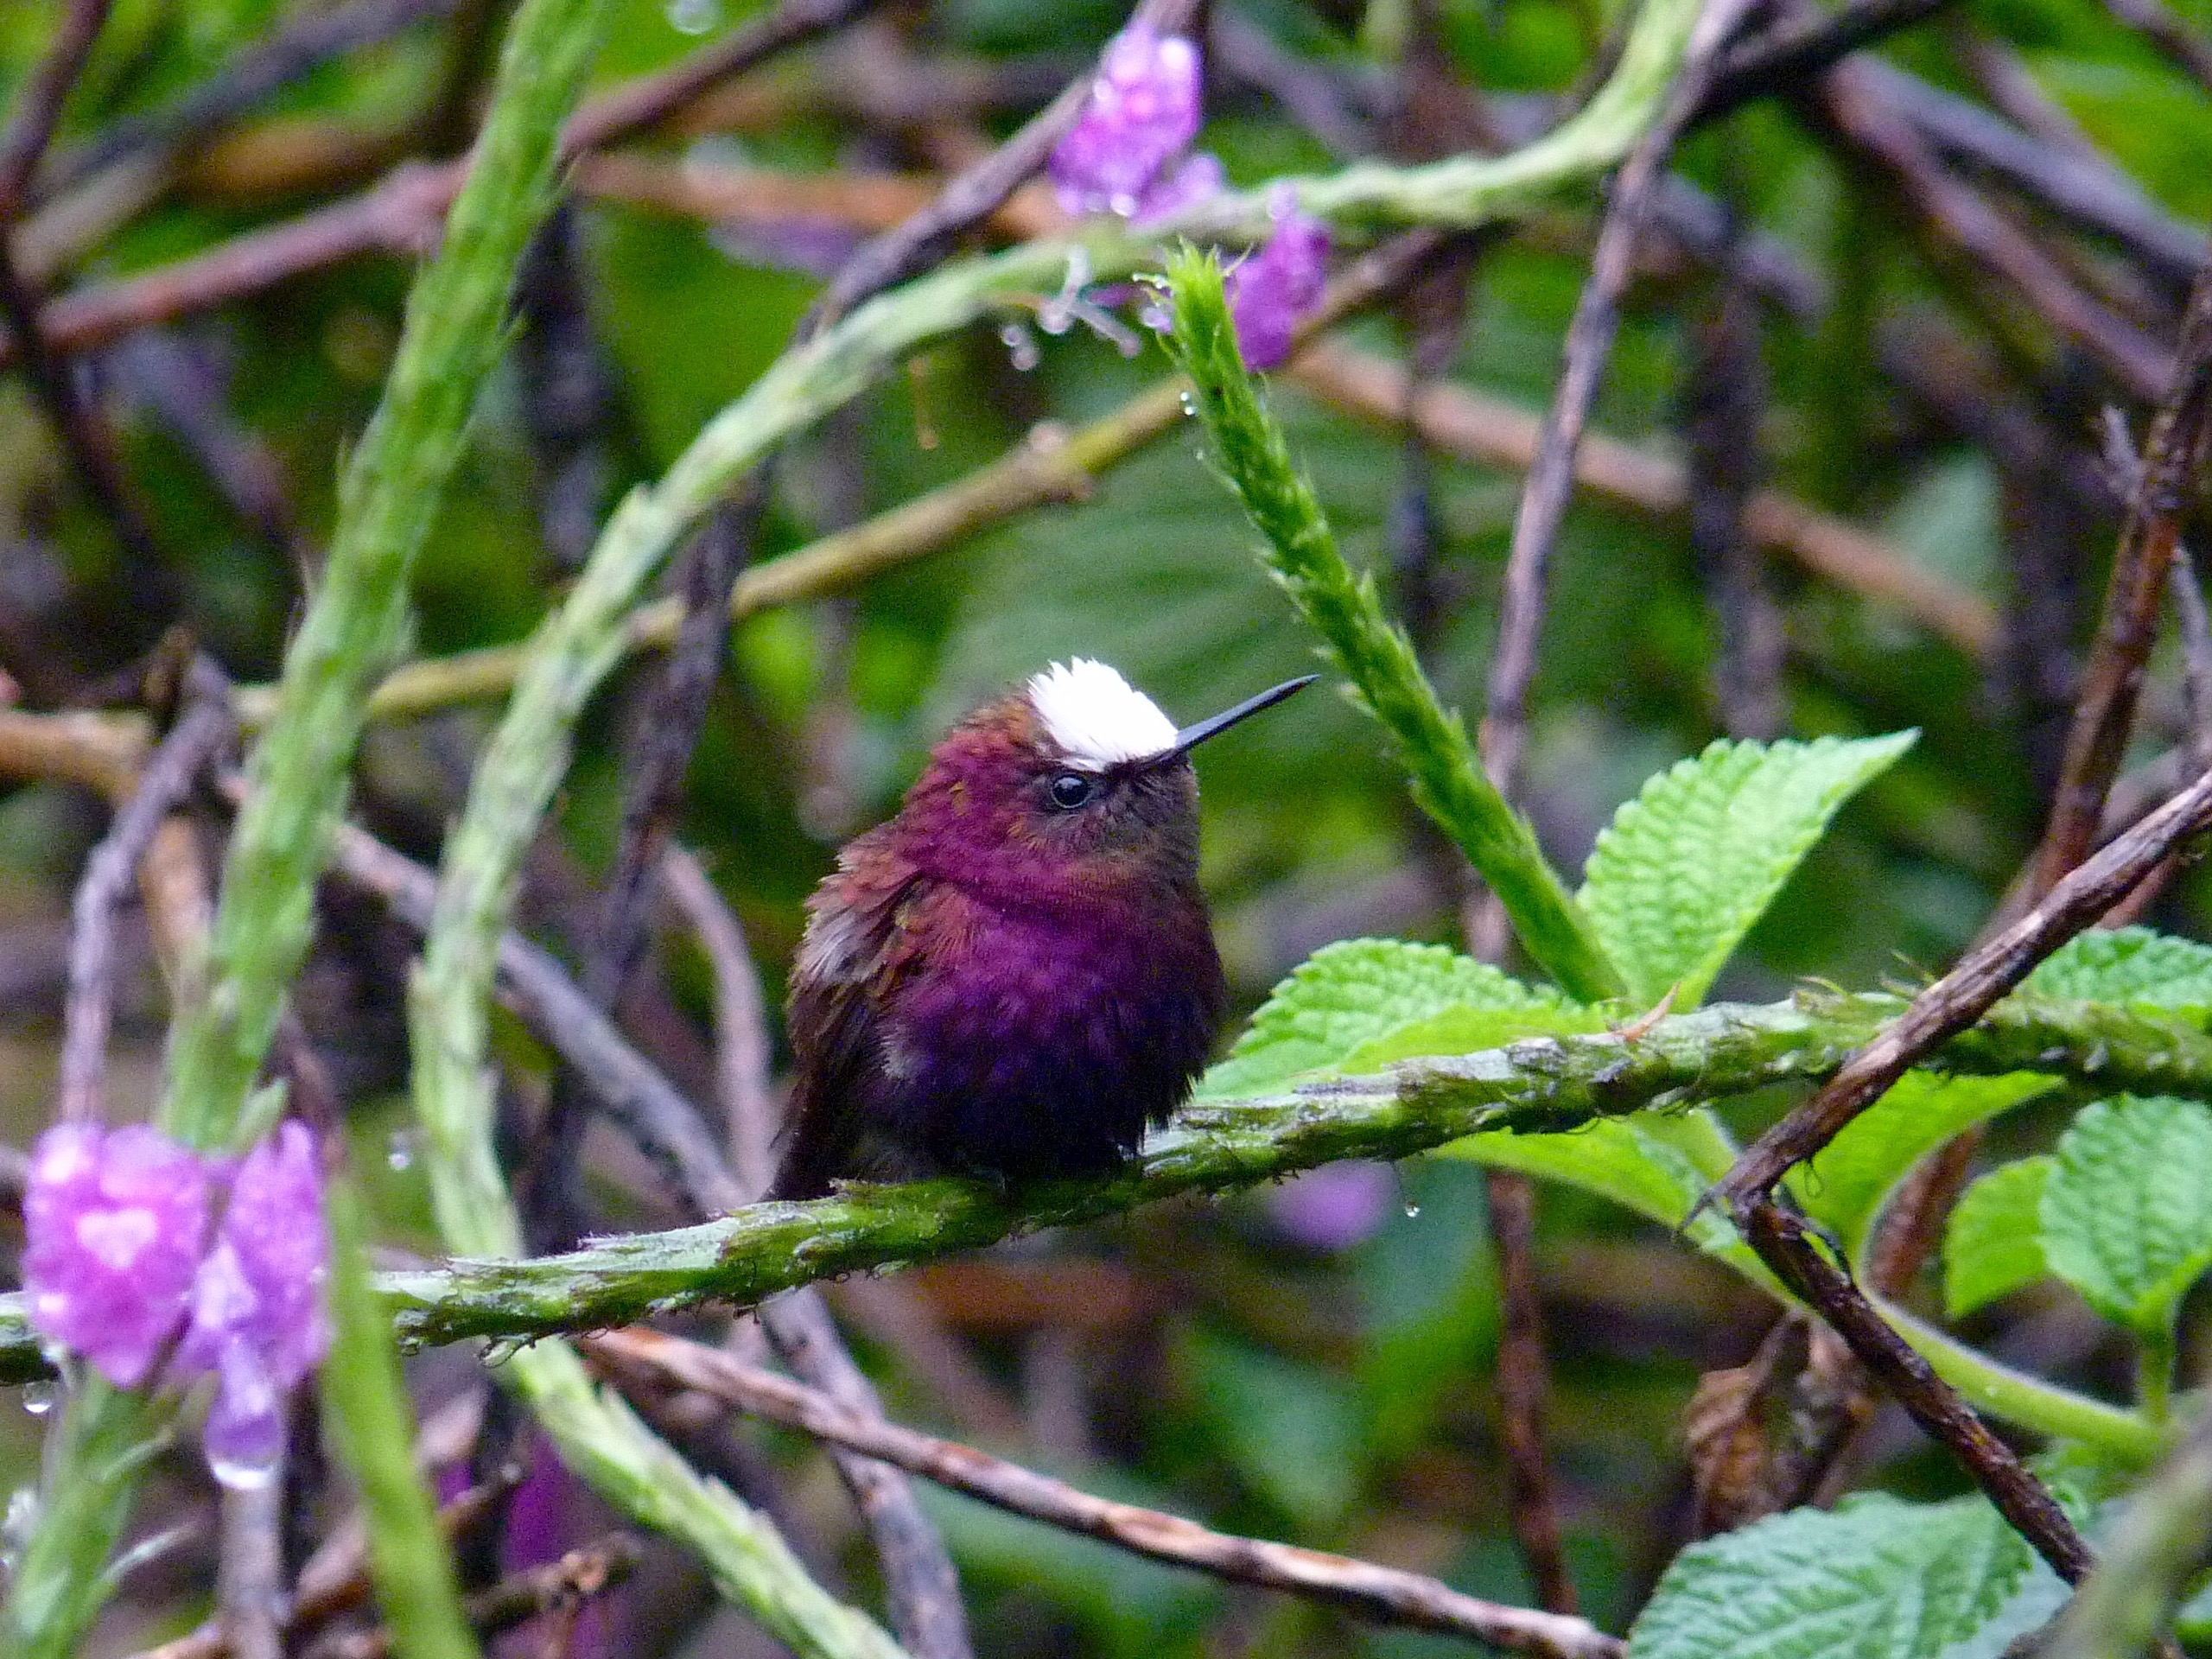 Snowcap-Costa Rica by Paco Madrigal